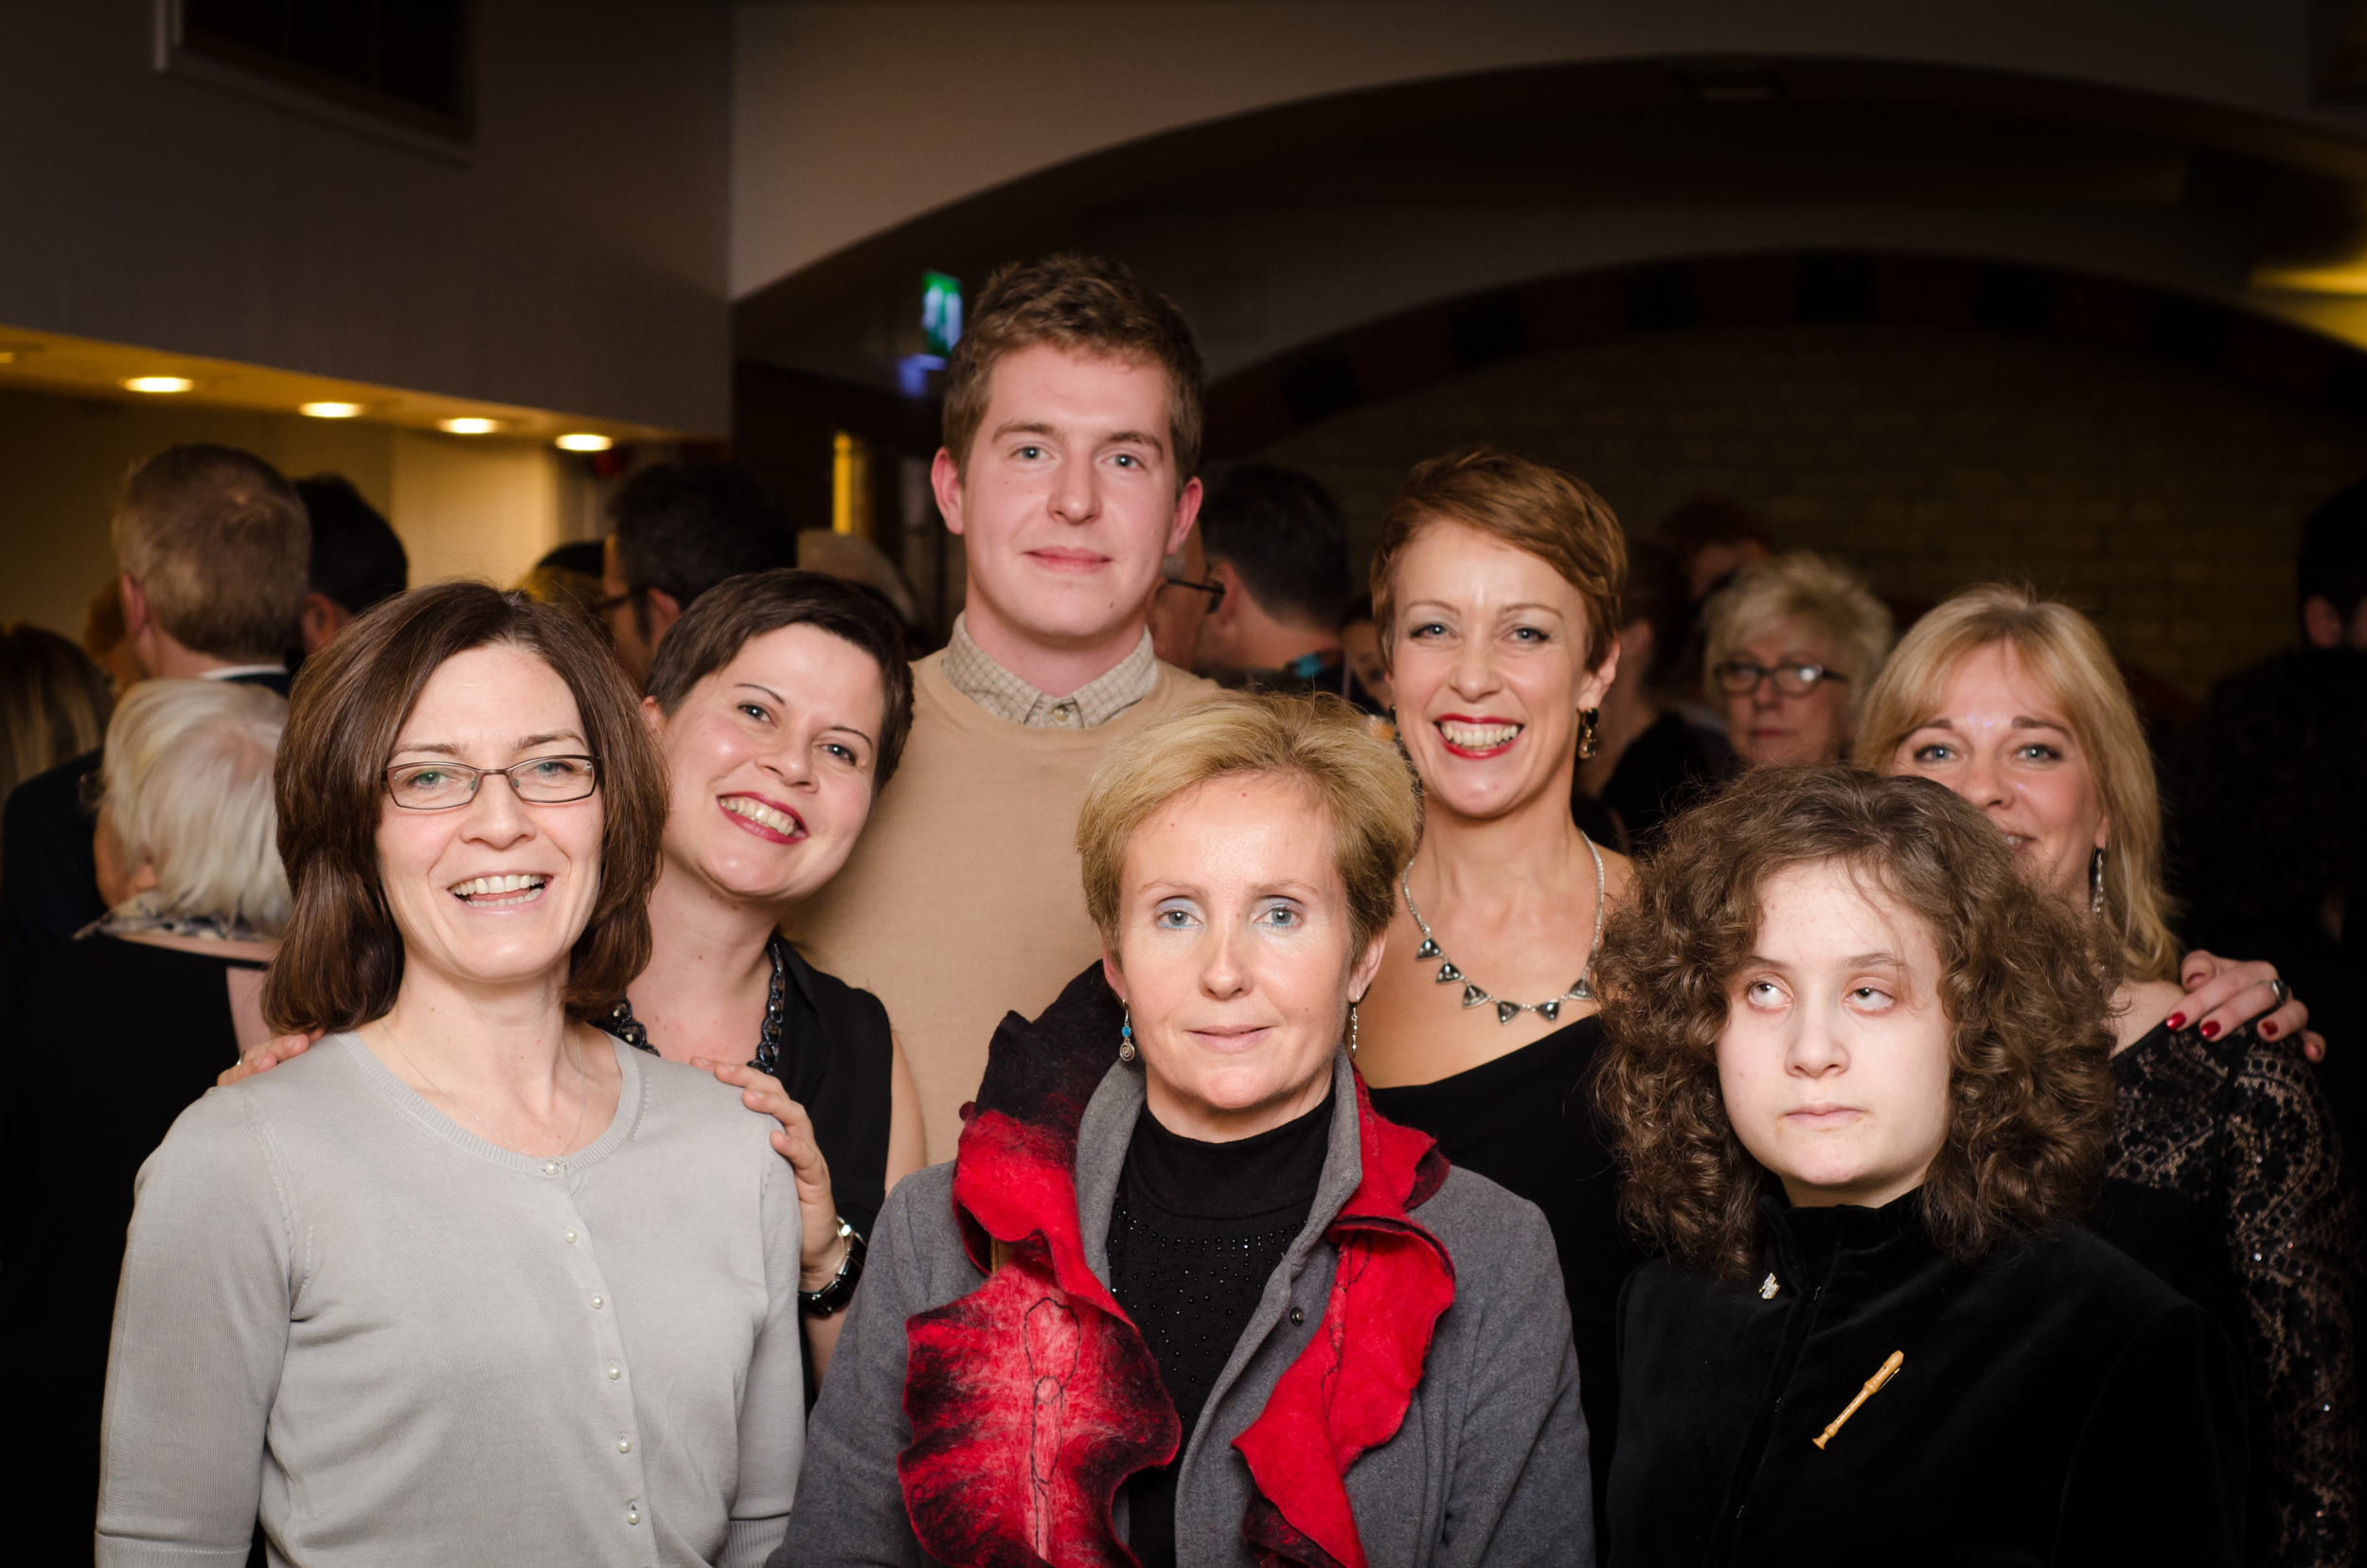 Alexia Sloane with her mother Isabelle and members of the Dosoco team at The Dowsing Sound Collective Christmas gig, during which Dosoco's awards were announced.